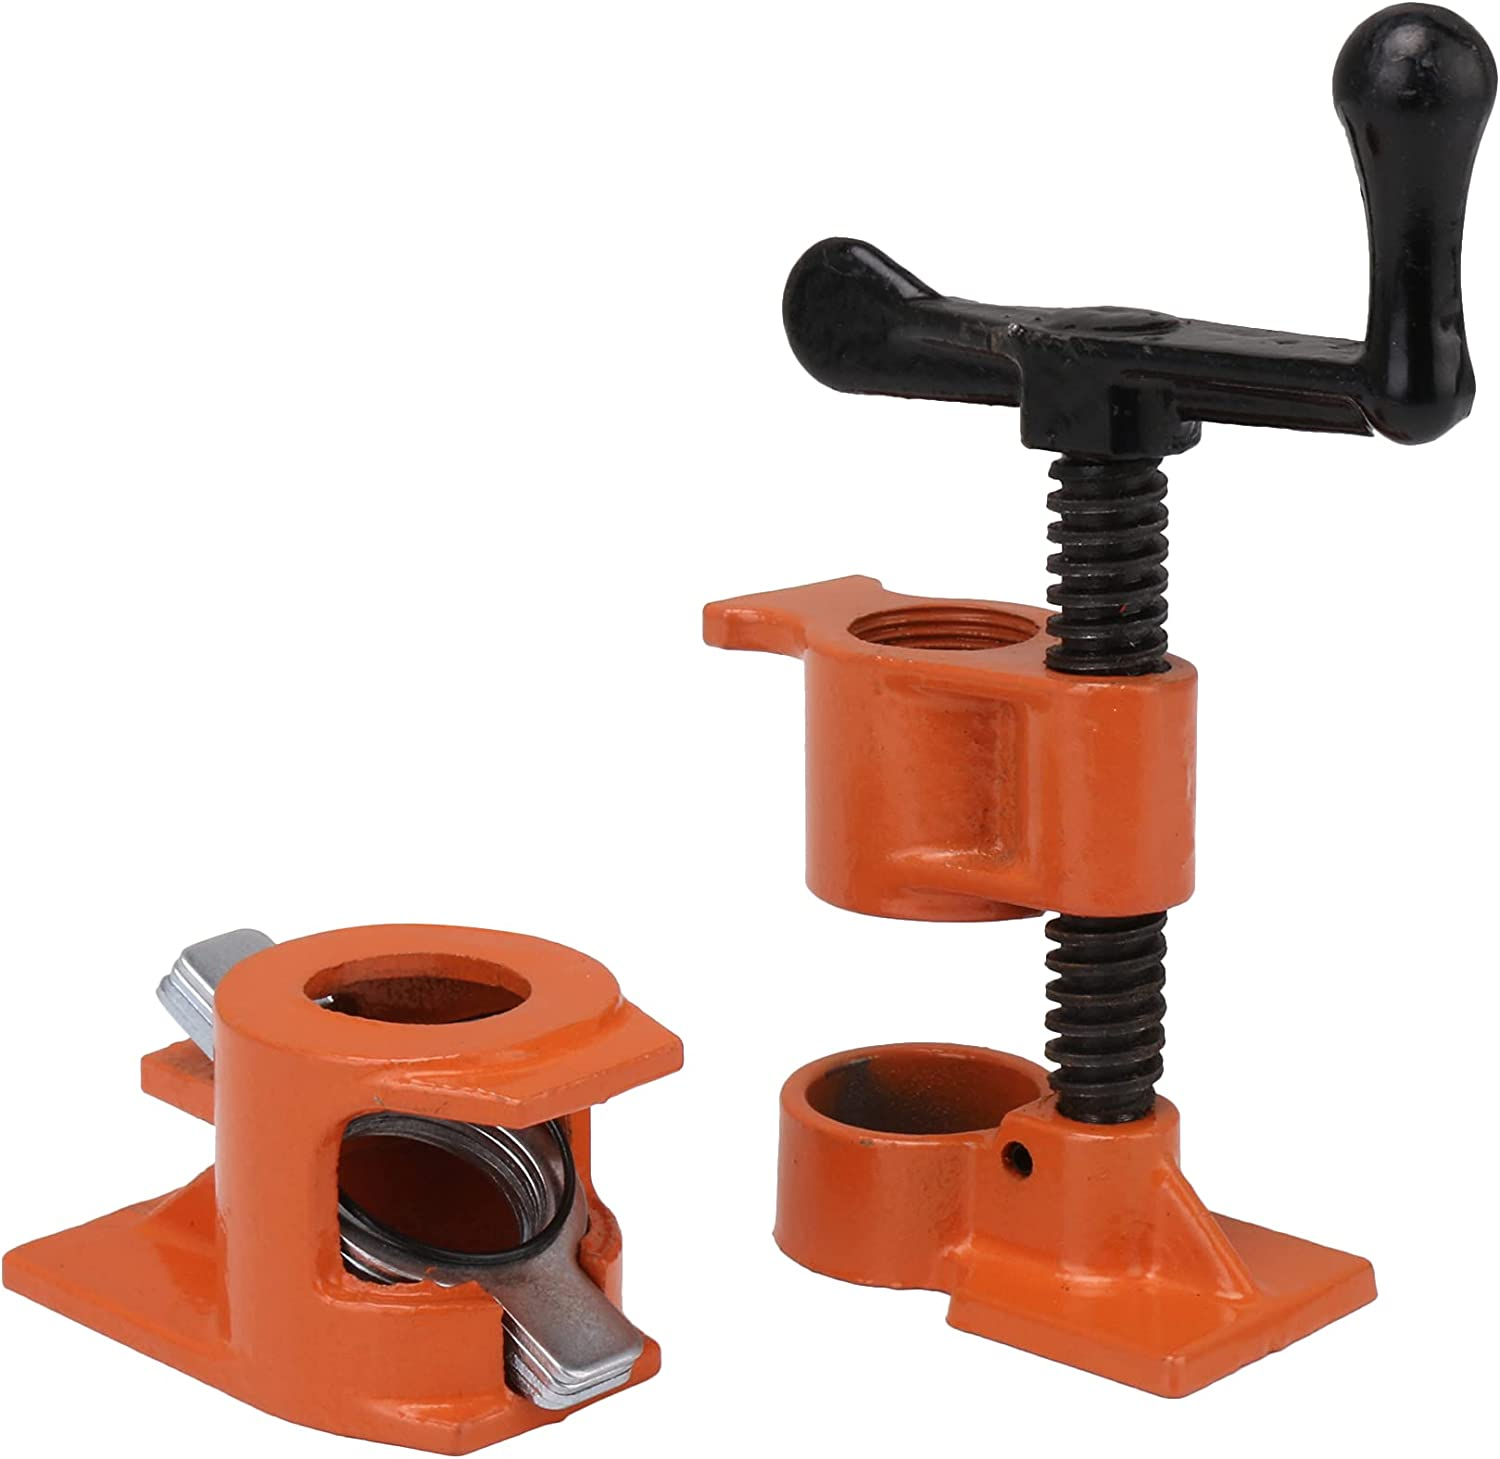 BQLZR Orange Max 44% OFF Iron Woodworking Cast Clamps Wood 3 Max 83% OFF Gluing Pipe 4